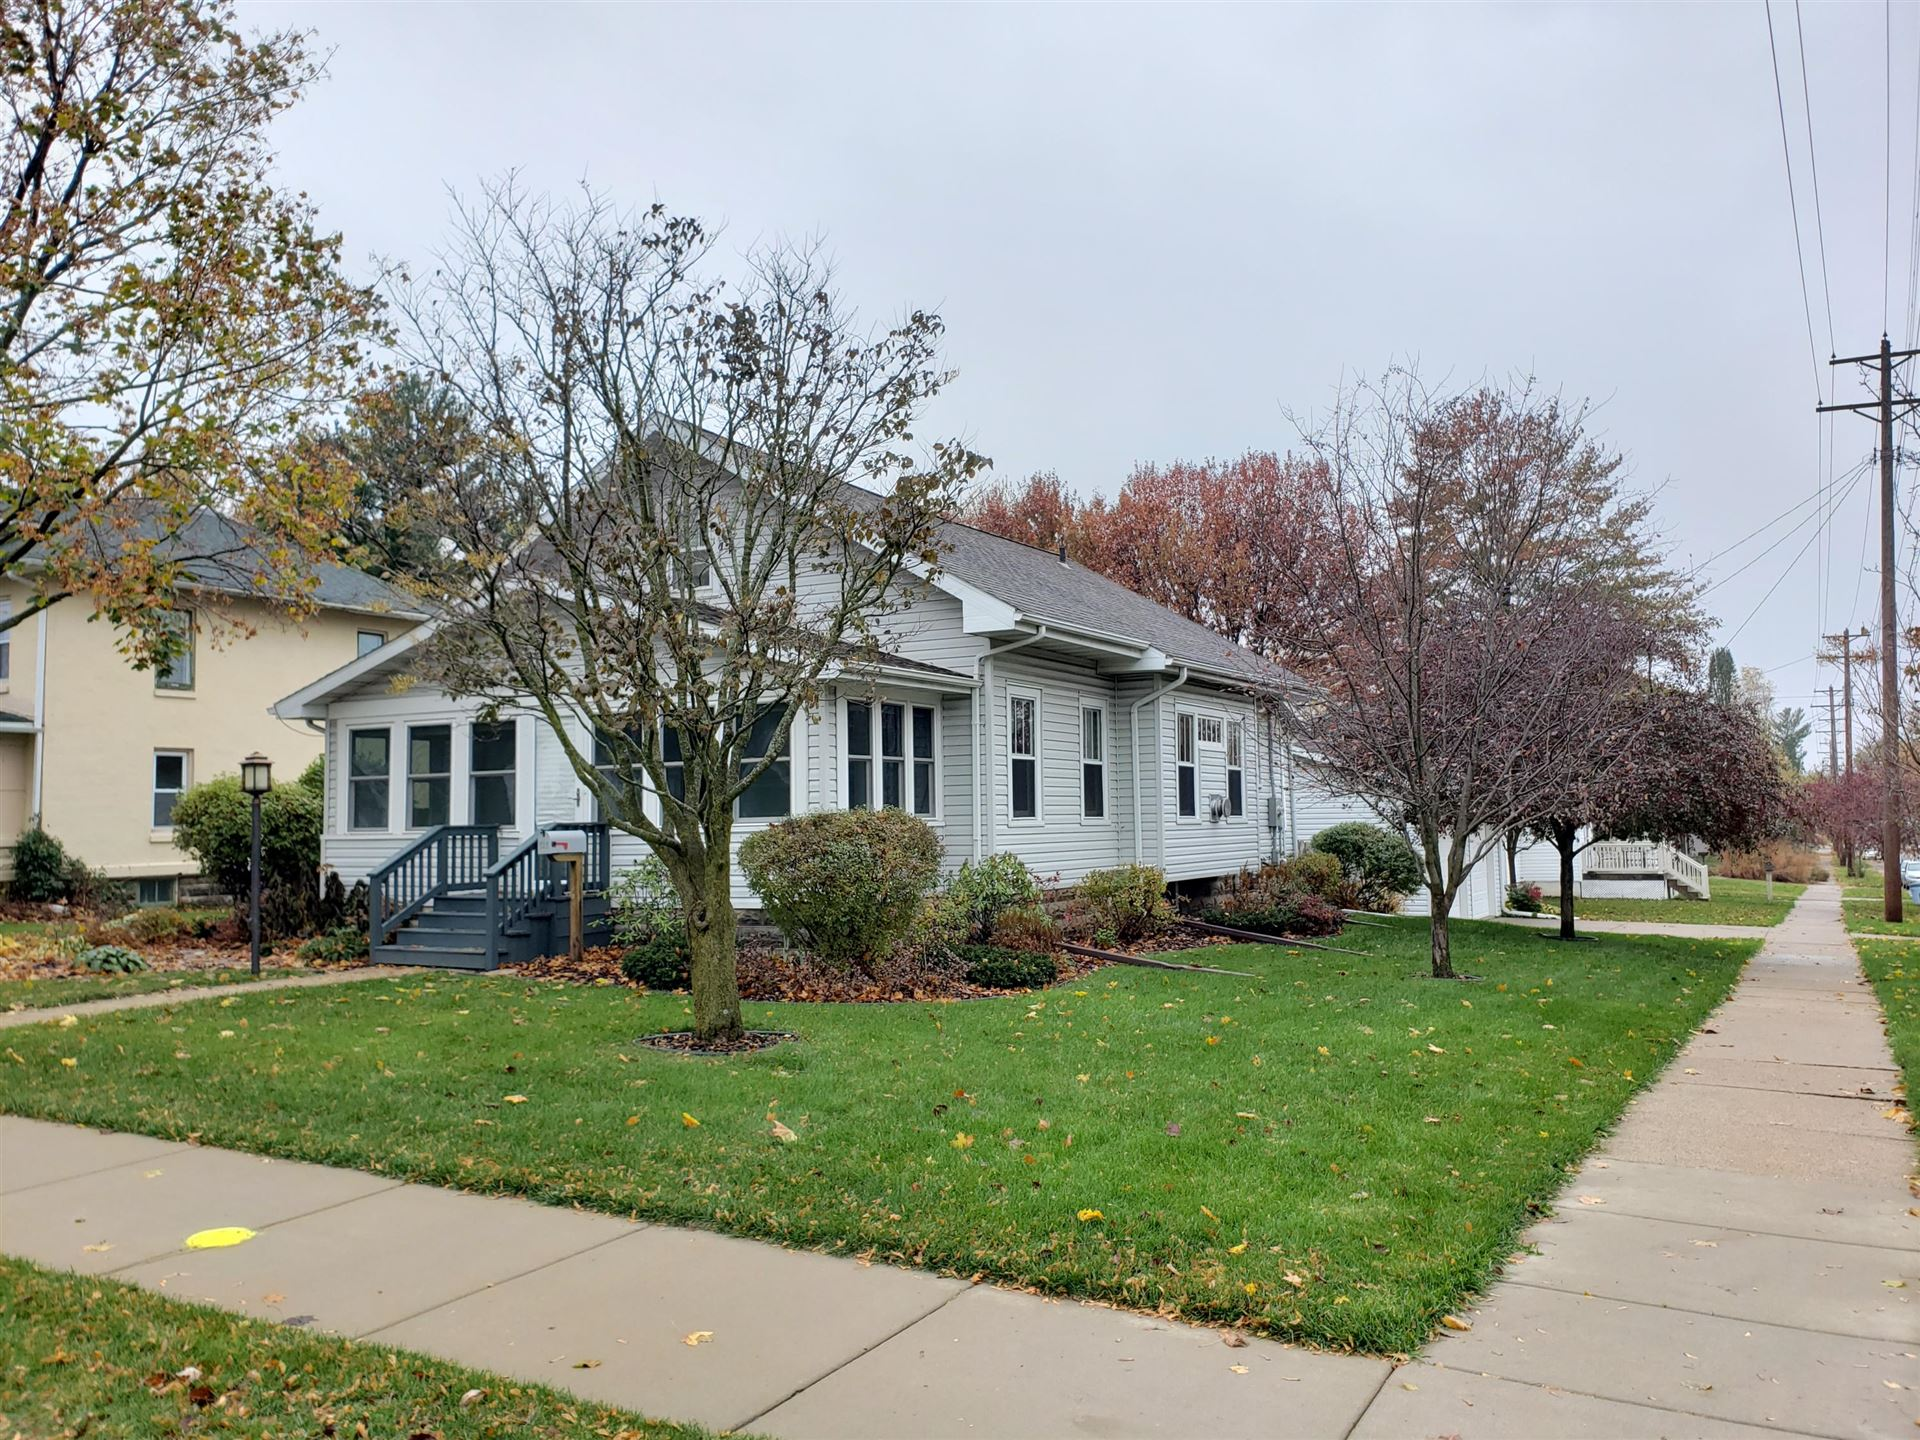 528 N East Ave, Viroqua, WI 54665 - MLS#: 1716182